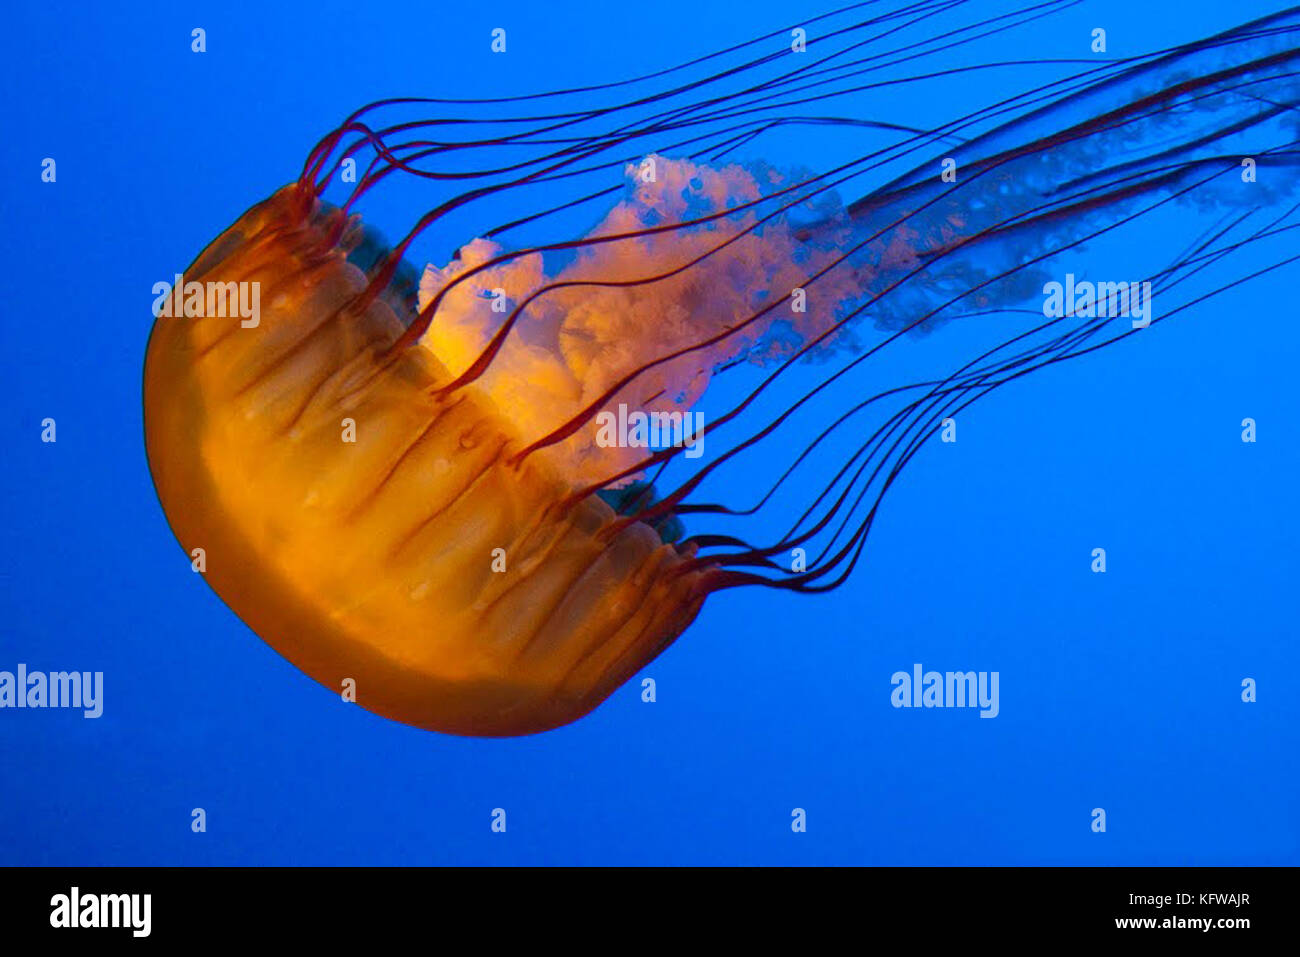 Download Stock Photos & Download Stock Images - Alamy